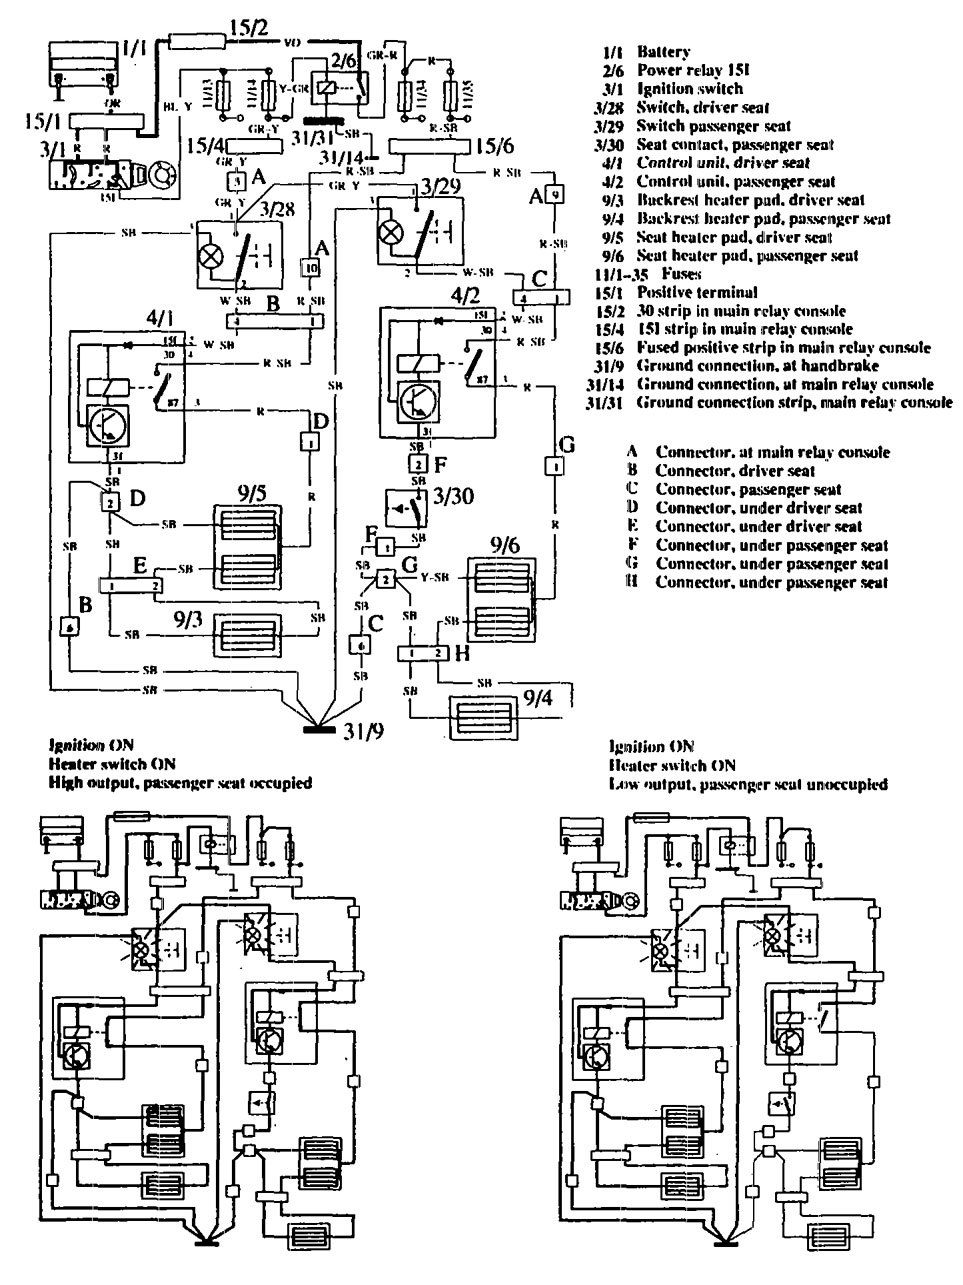 1998 Volvo S90 Engine Diagram Auto Electrical Wiring 2004 S40 Fuse Related With